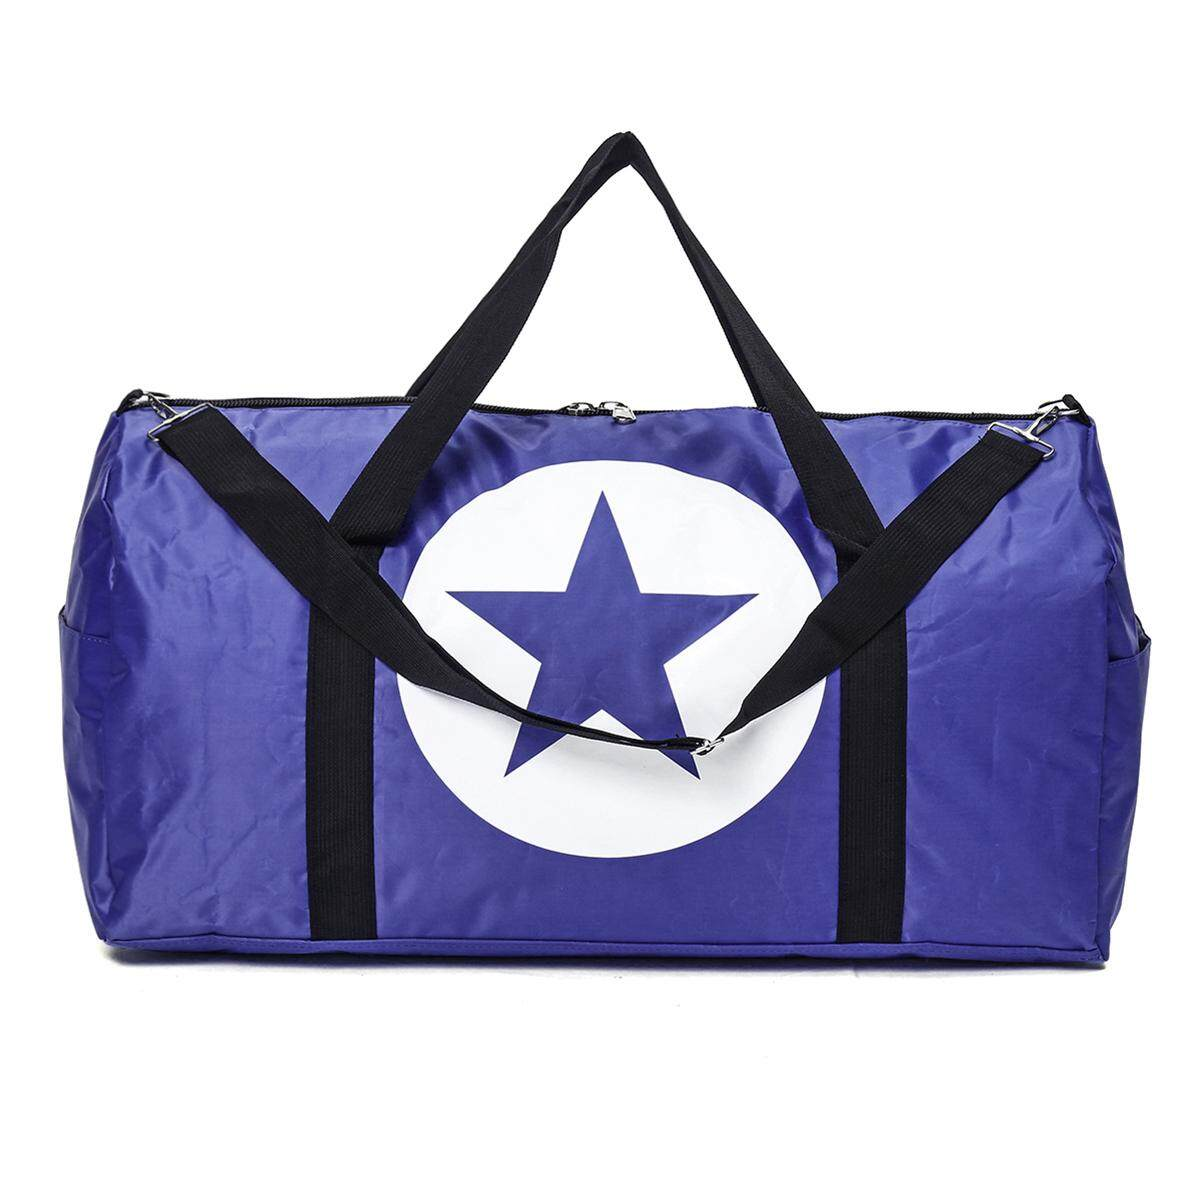 US Waterproof Travel Women Nylon Large Star Sports Gym Duffle Tote Handbag Bags